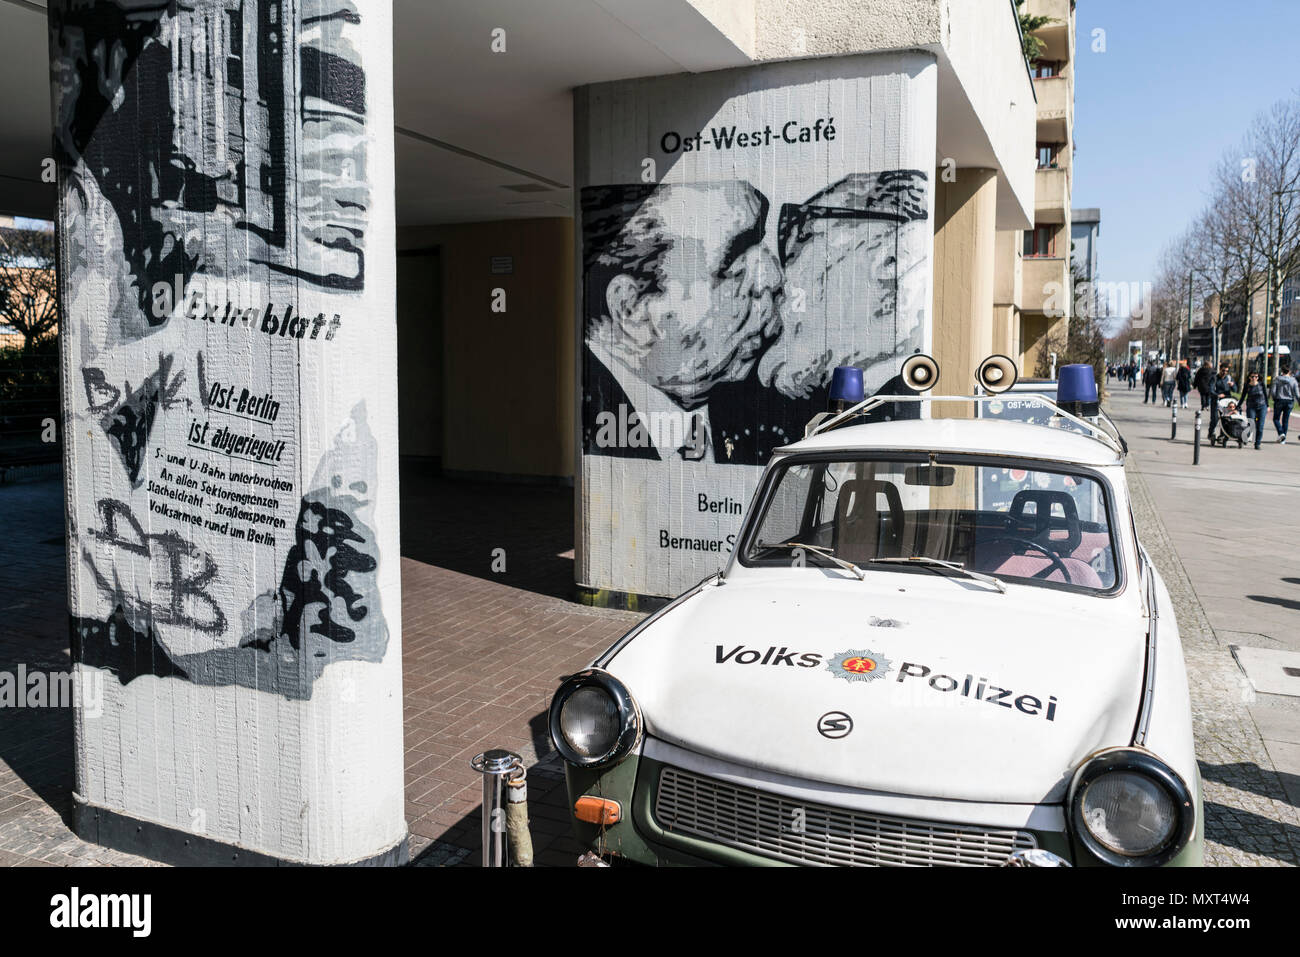 Trabi, Ost West Cafe, Prenzlauer Berg, Berlin Stockbild